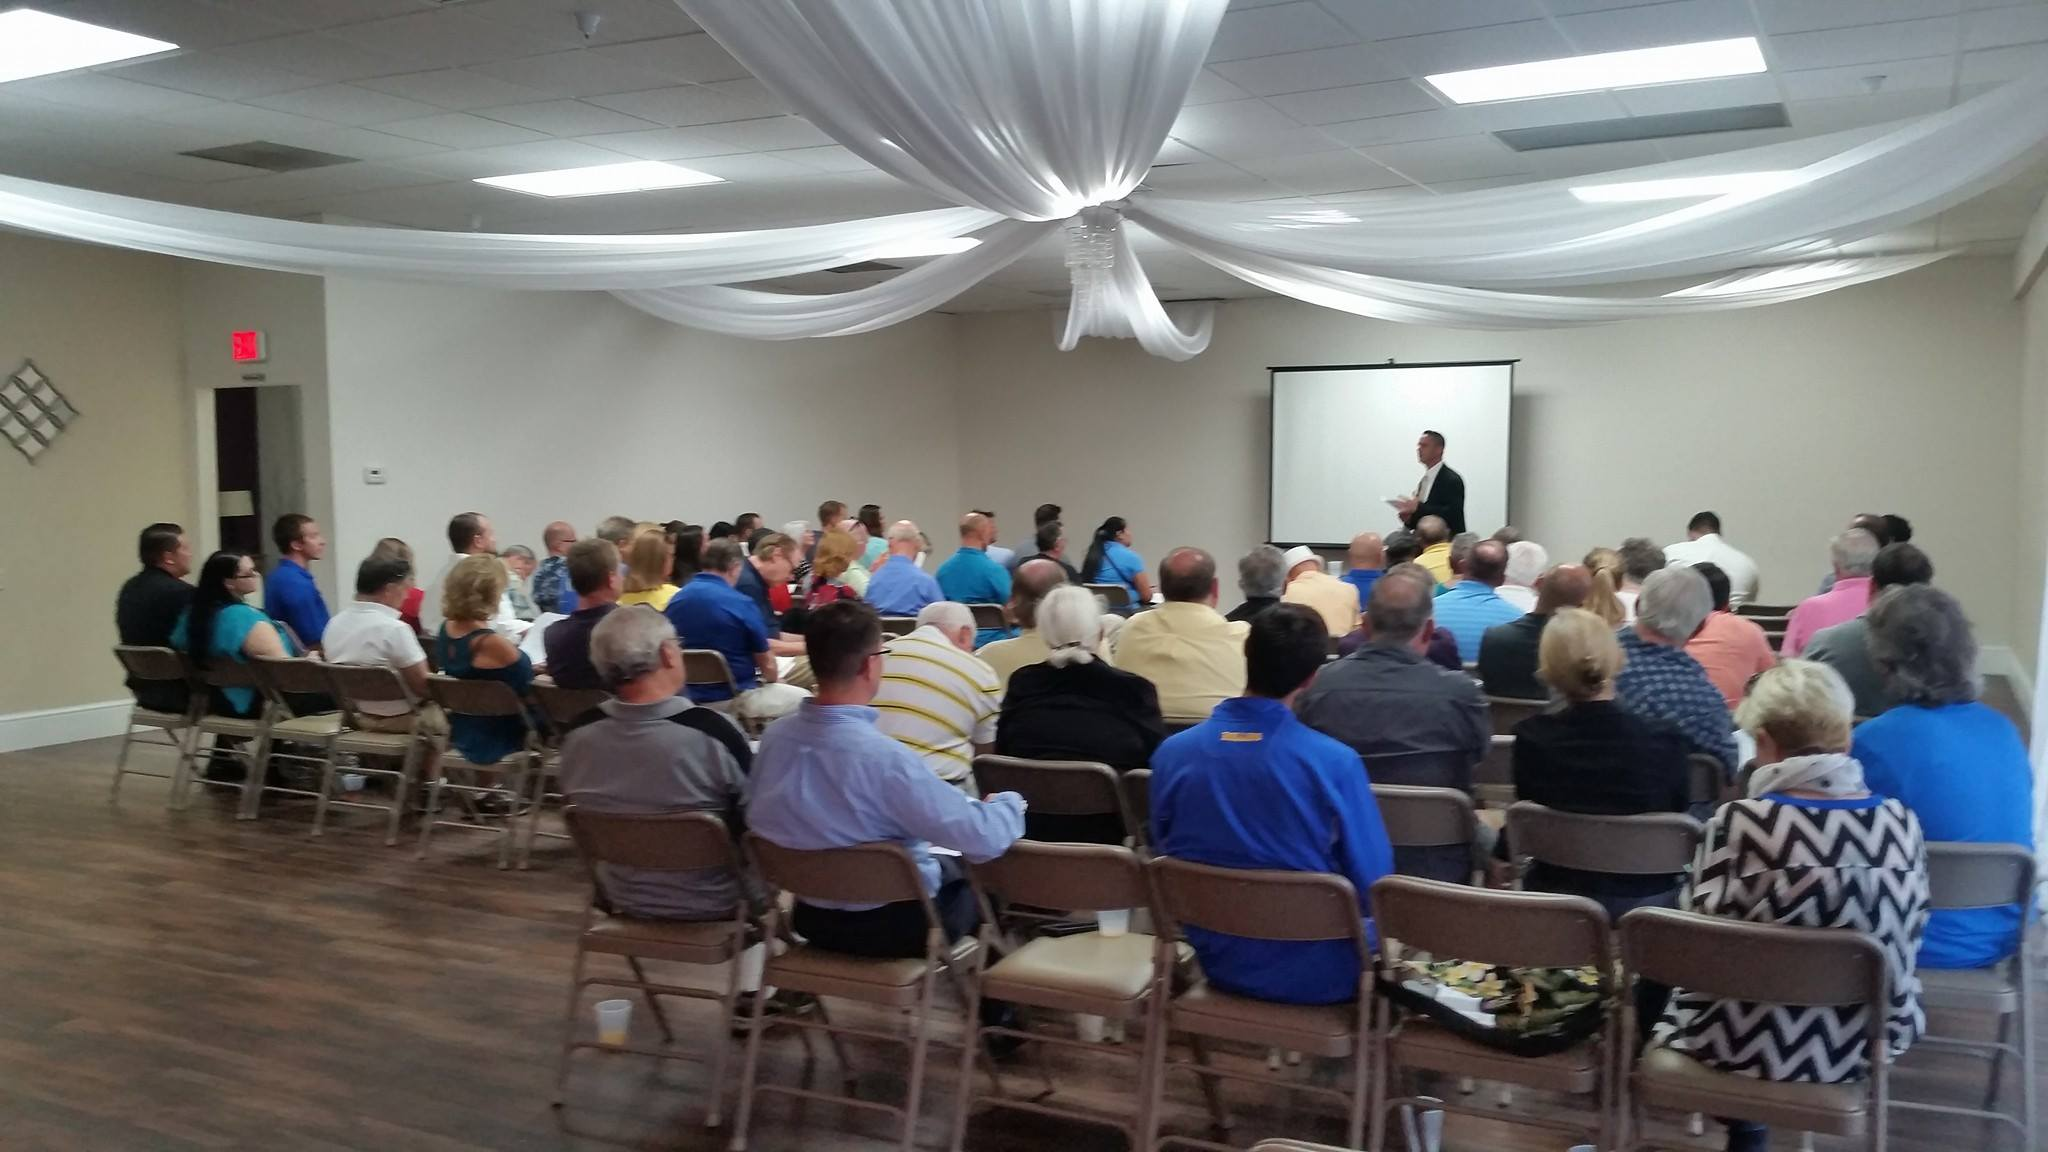 SWFL real estate investing events